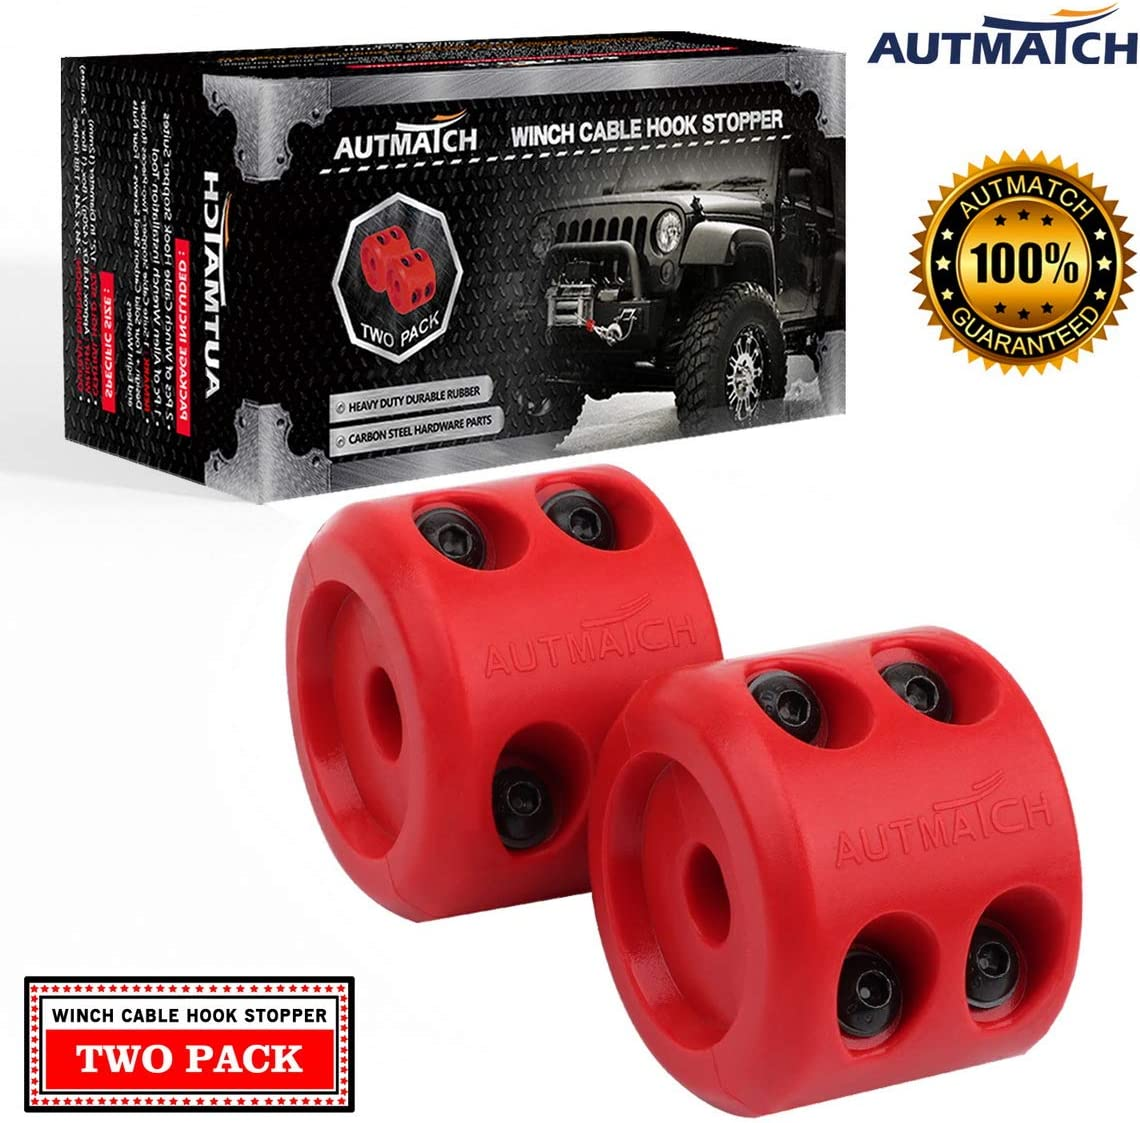 AUTMATCH Winch Cable Hook Trust Large discharge sale Stopper Pack 2 Silicone Shock Rubber